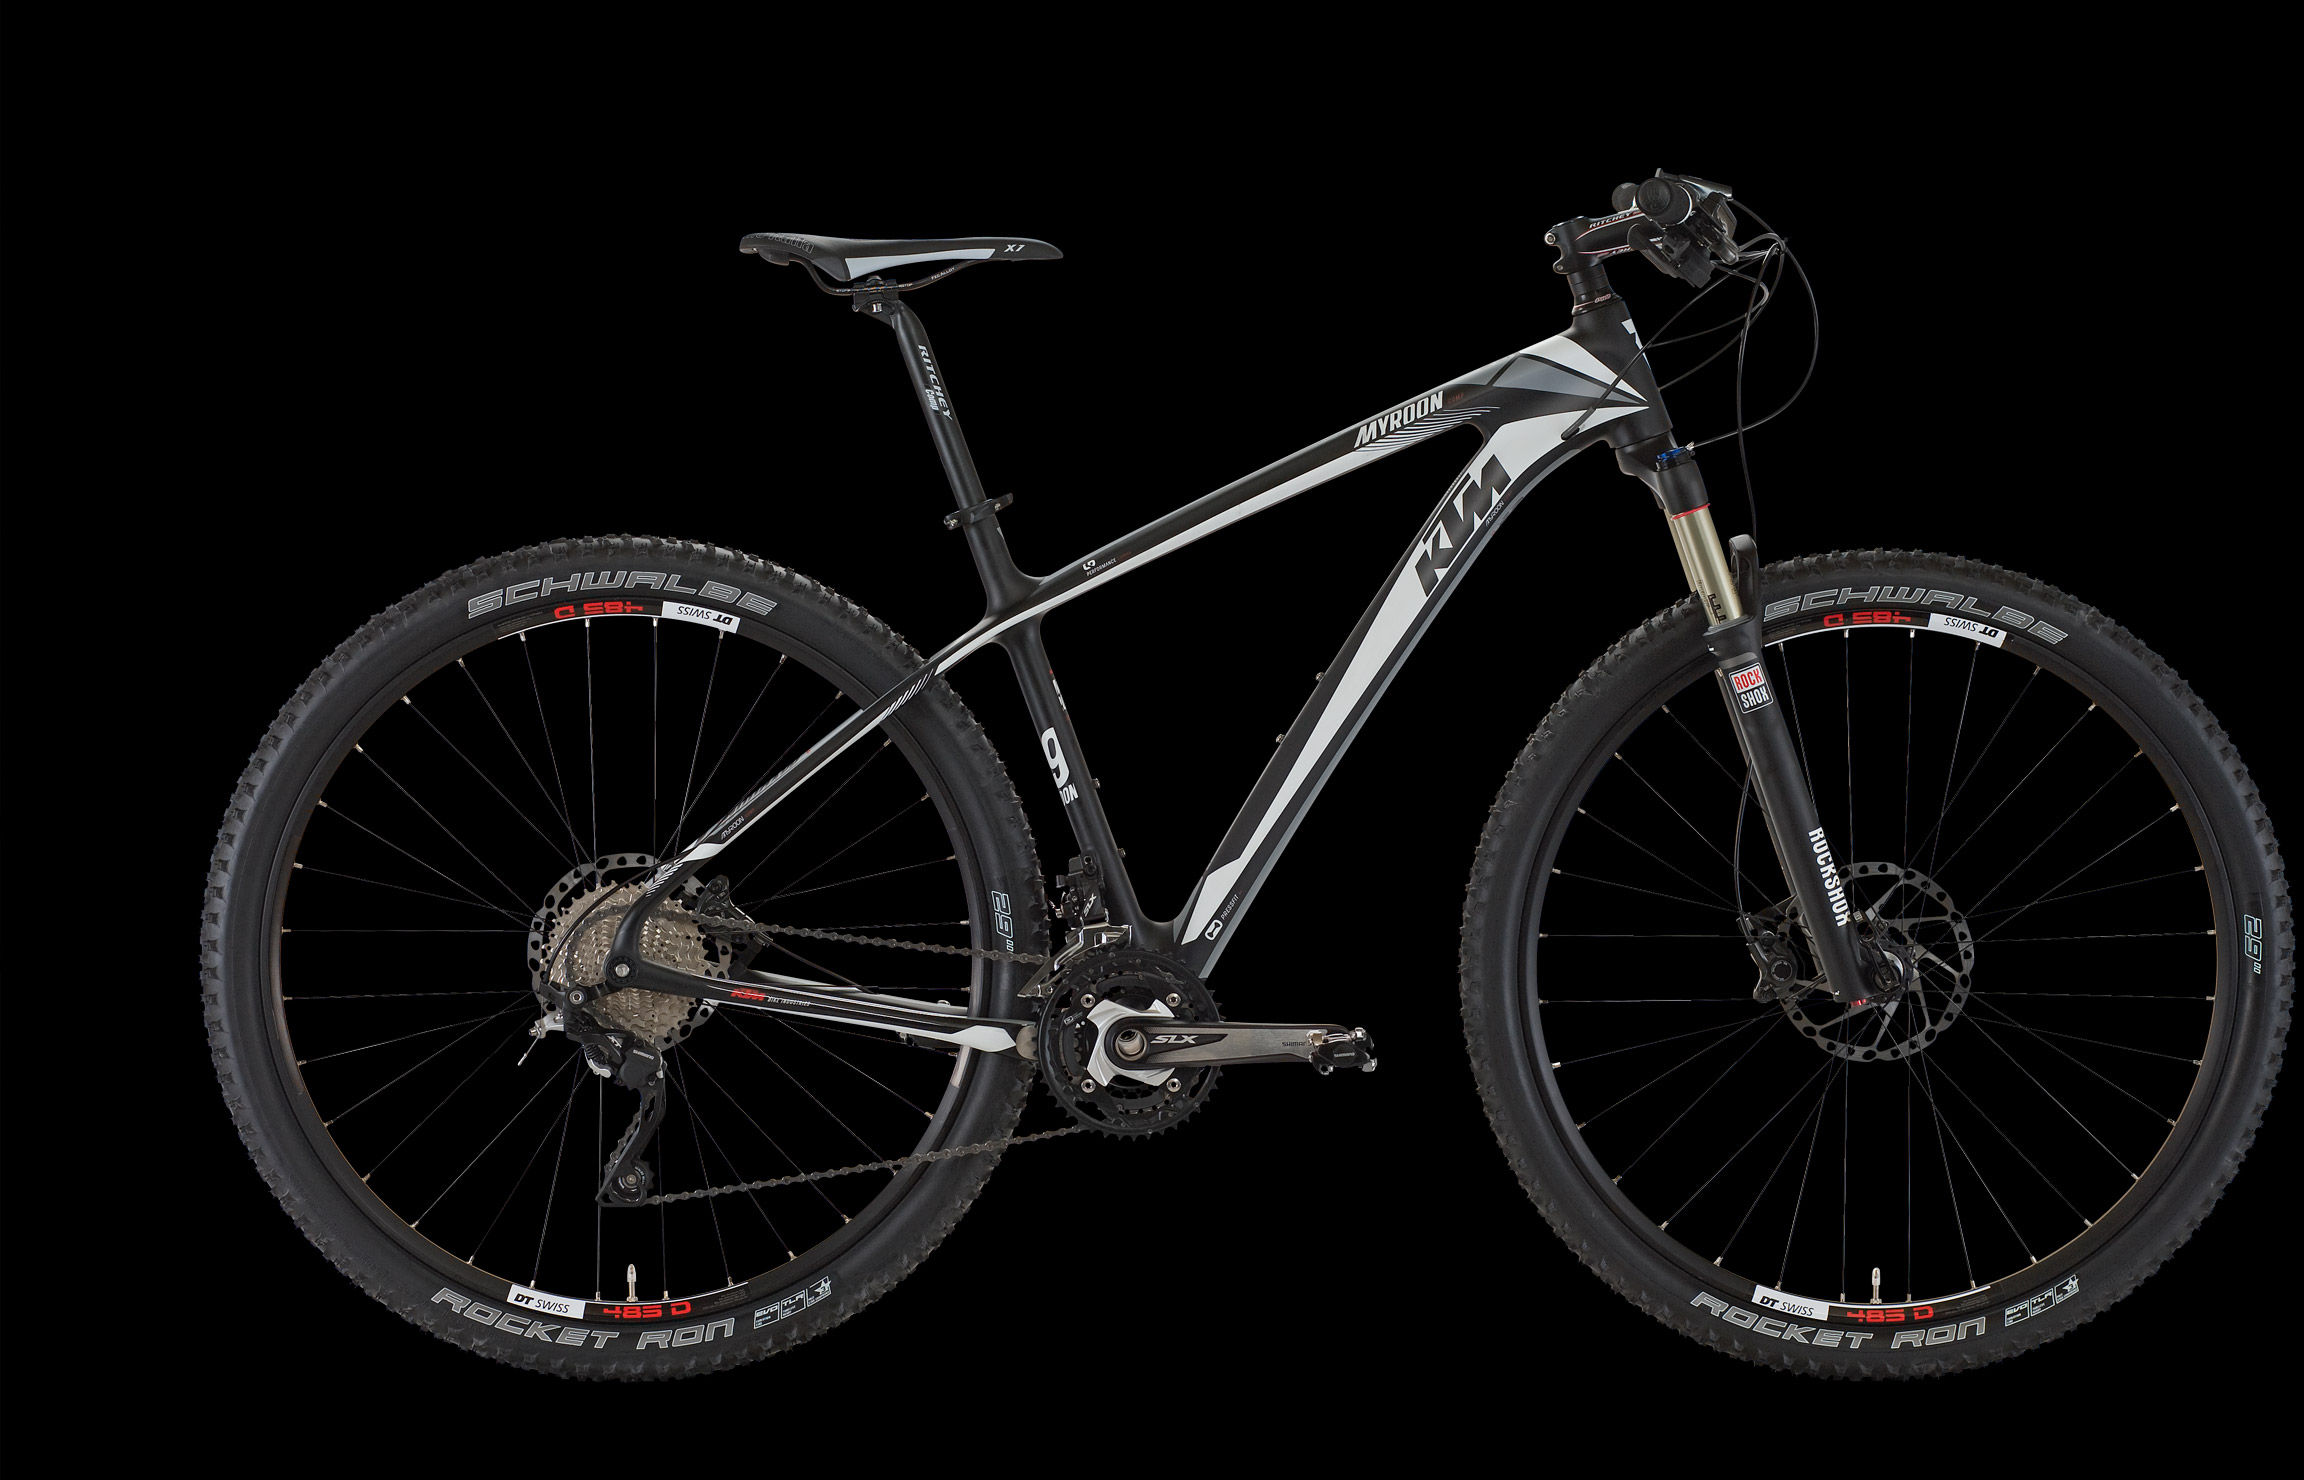 Ktm Myroon 29 Comp 2013 Review The Bike List